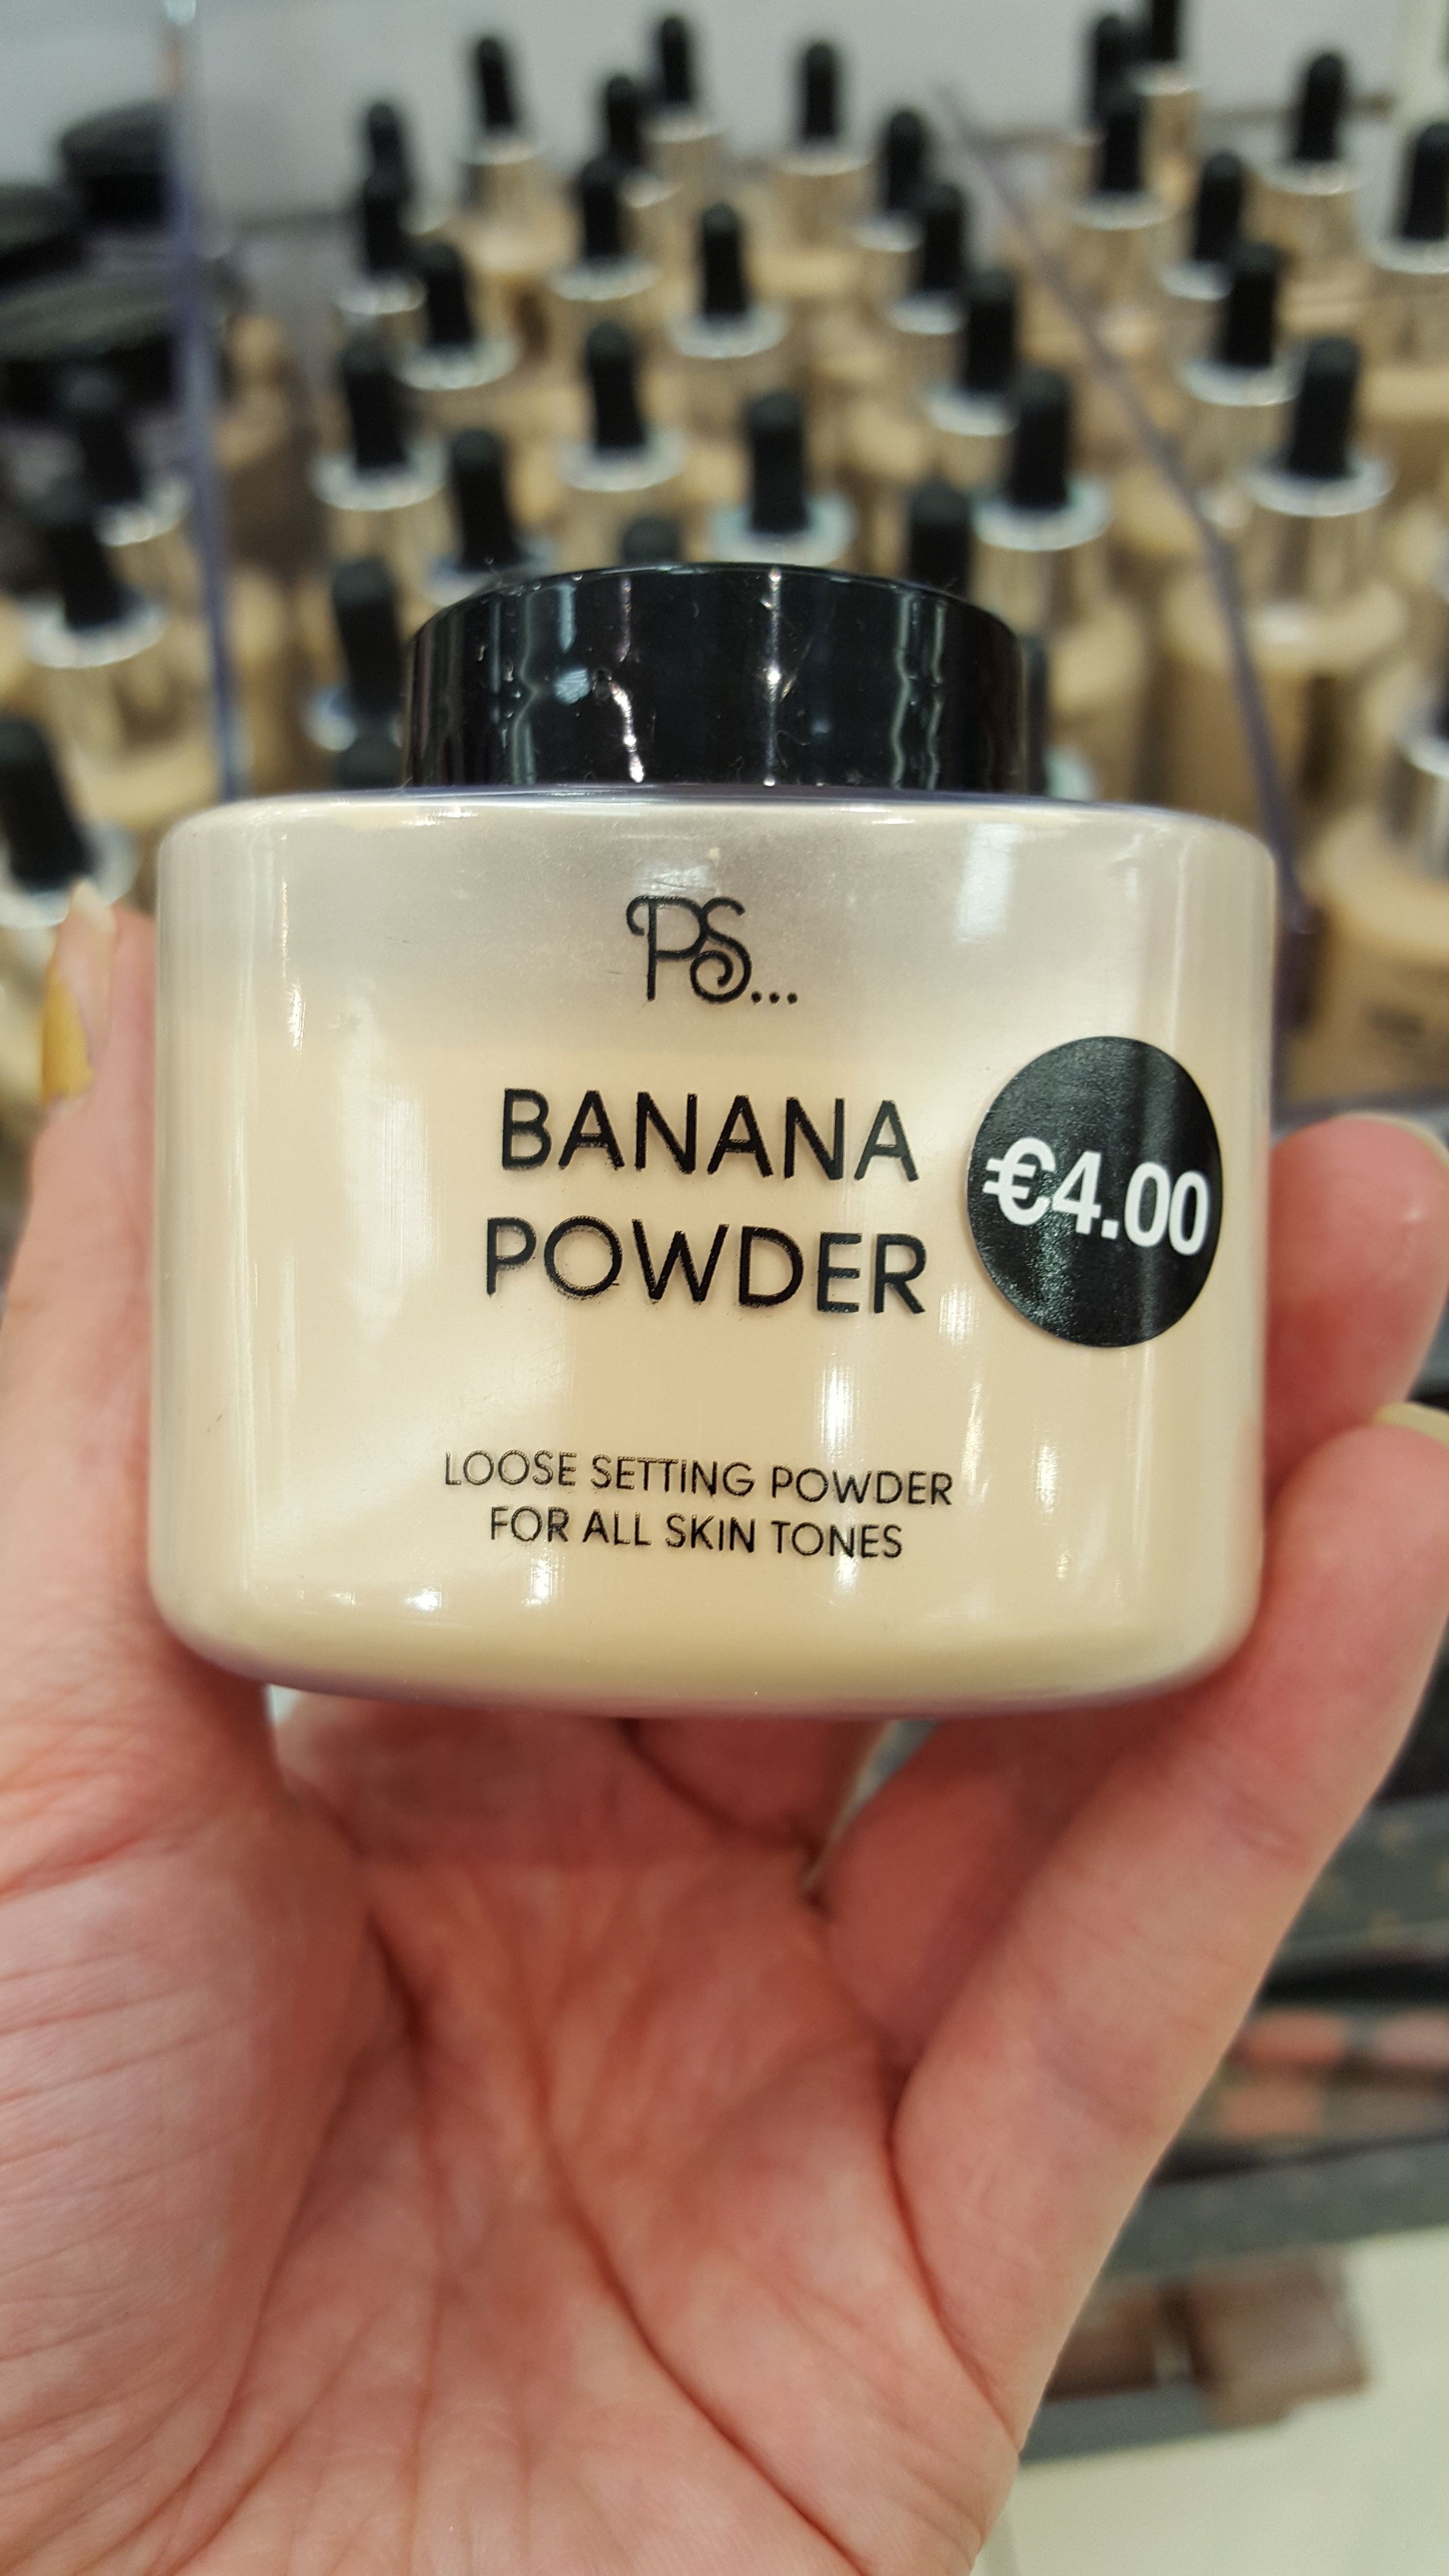 This winning dupe for Ben Nye's luxury banana powder.A favourite with celebrity makeup artists, one of which is Mario Dedivanovic or @makeupbymario.